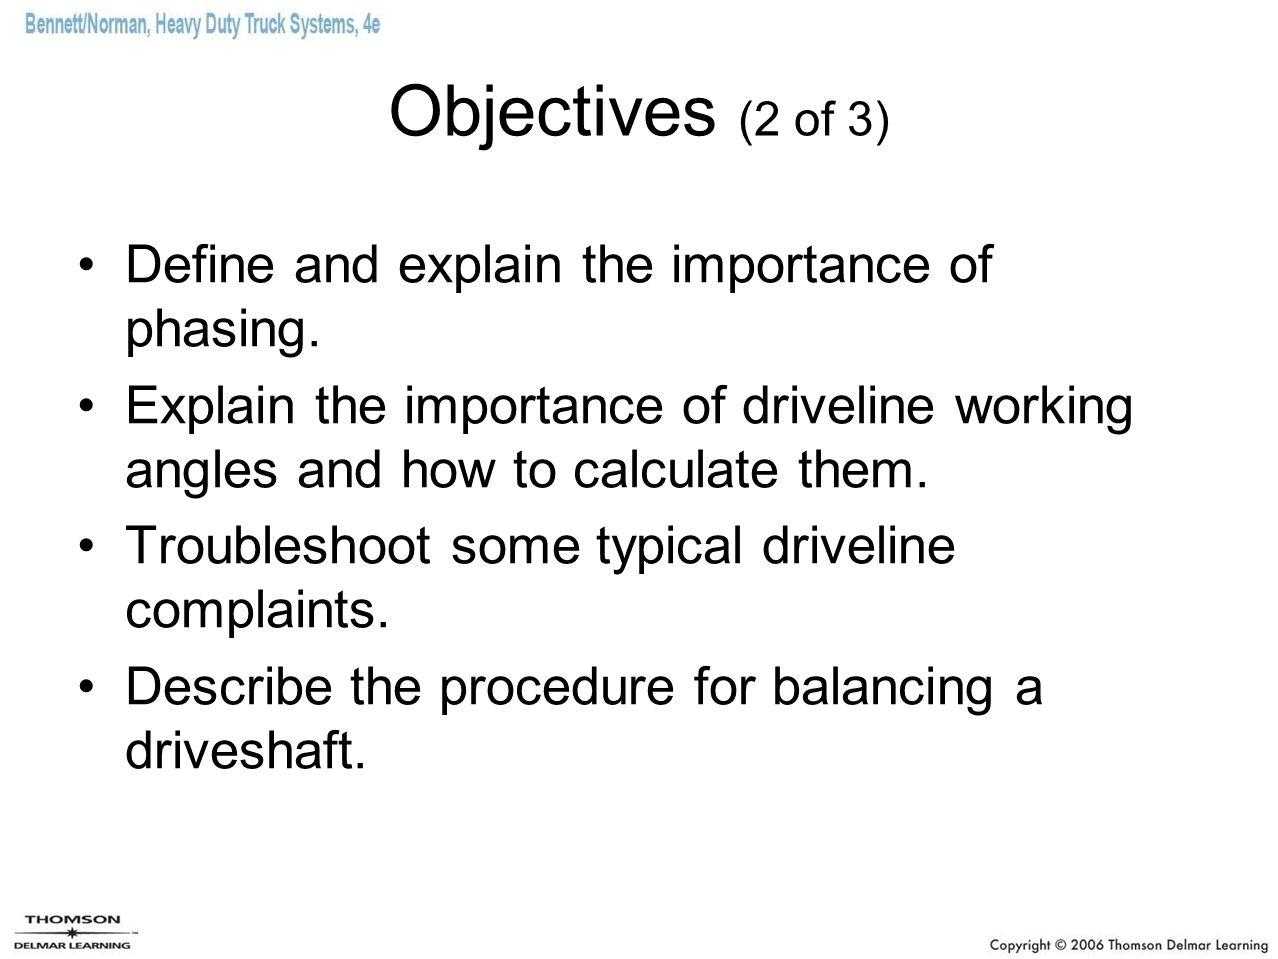 Objectives (2 of 3) Define and explain the importance of phasing.